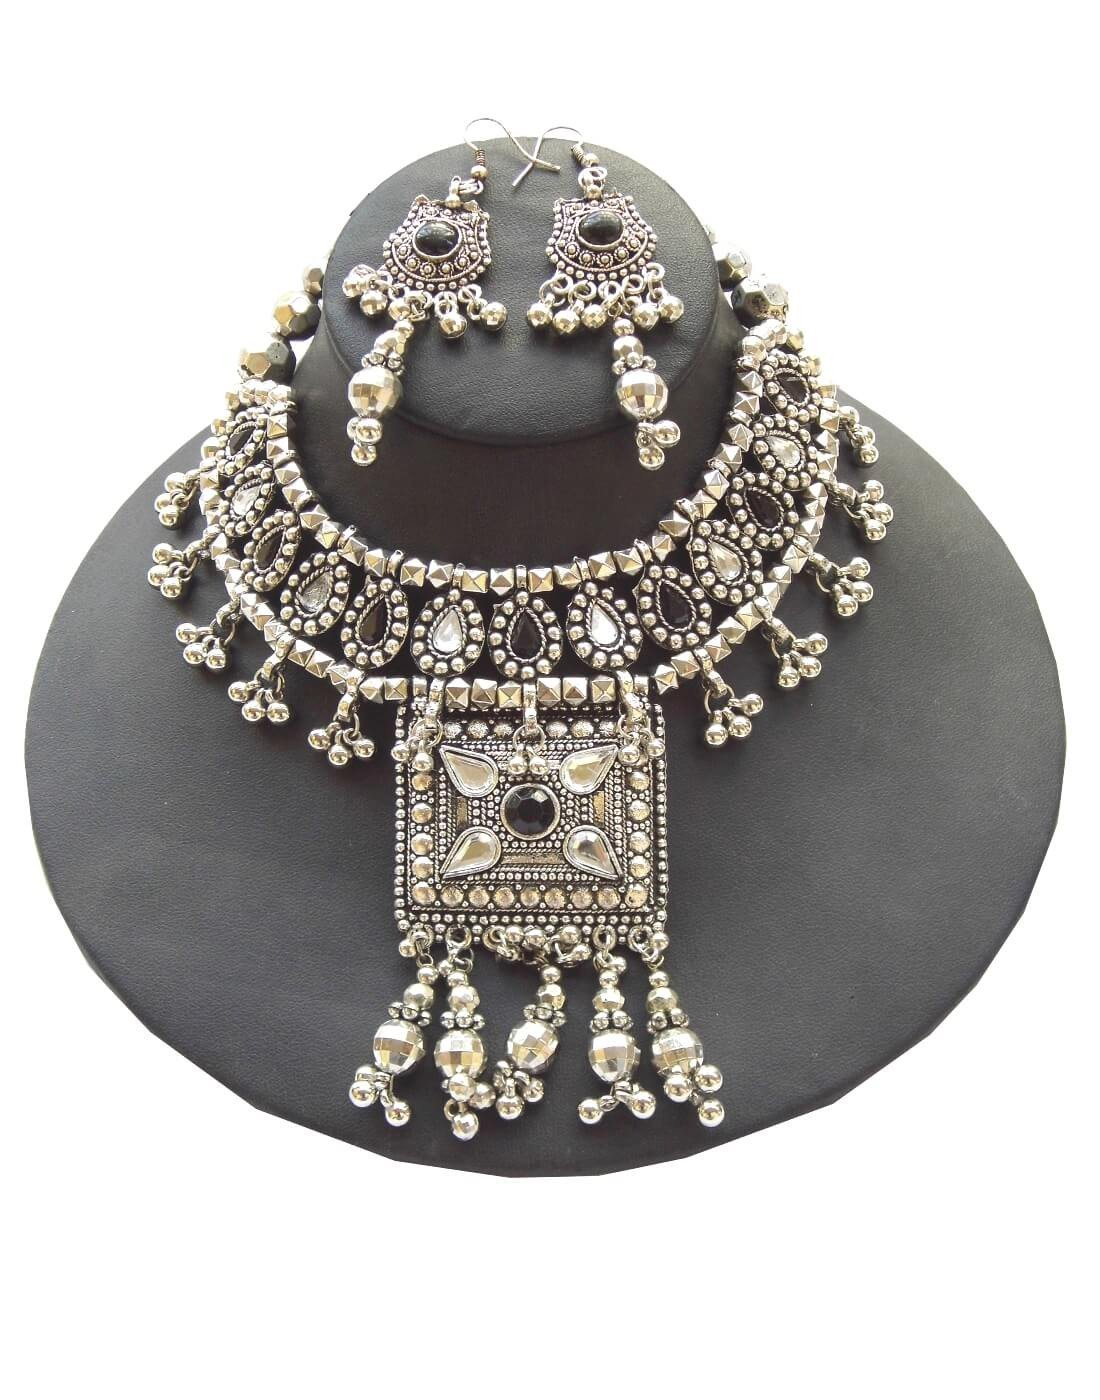 Oxidized Metal Navratri Jewellery Set With Square Pendant